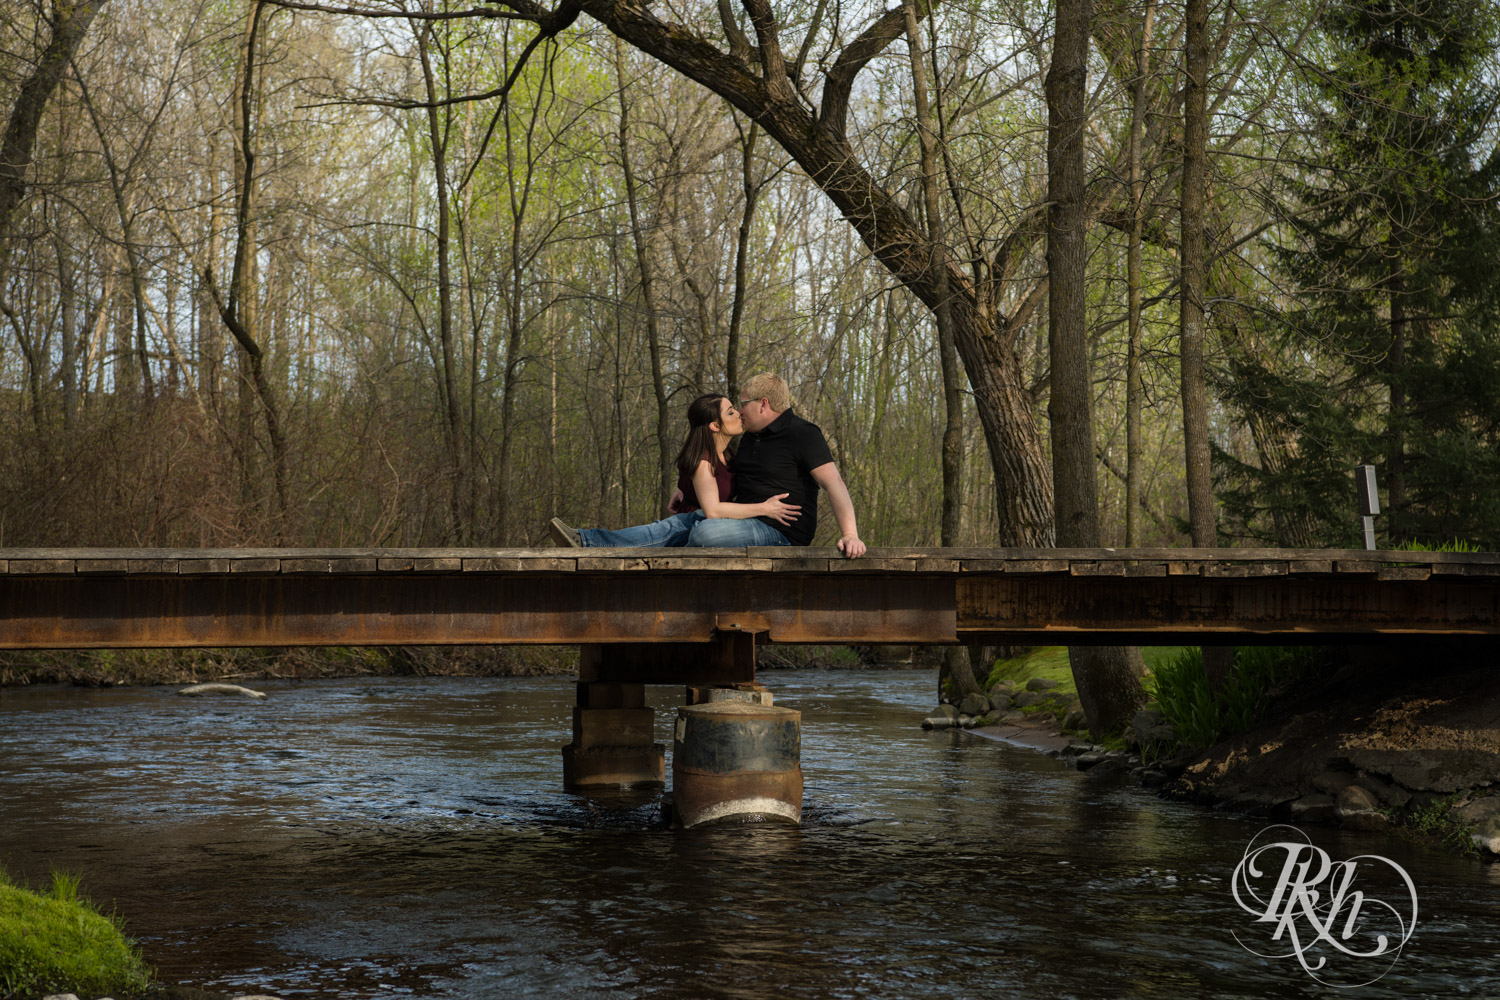 Chelsey & Erik - Minnesota Engagement Photography - Creekside Farm and Events - Rush City - RKH Images  (6 of 18).jpg